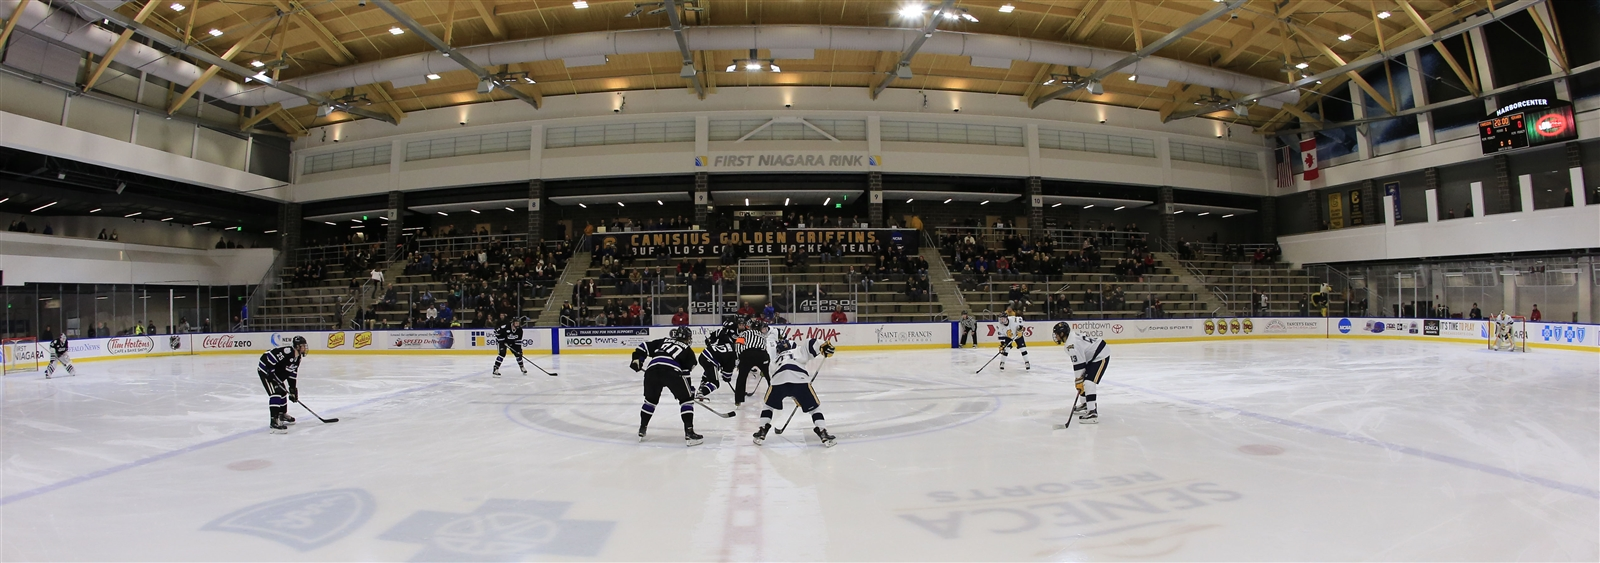 Canisius and Niagara play home and home this weekend. (Harry Scull Jr./Buffalo News)